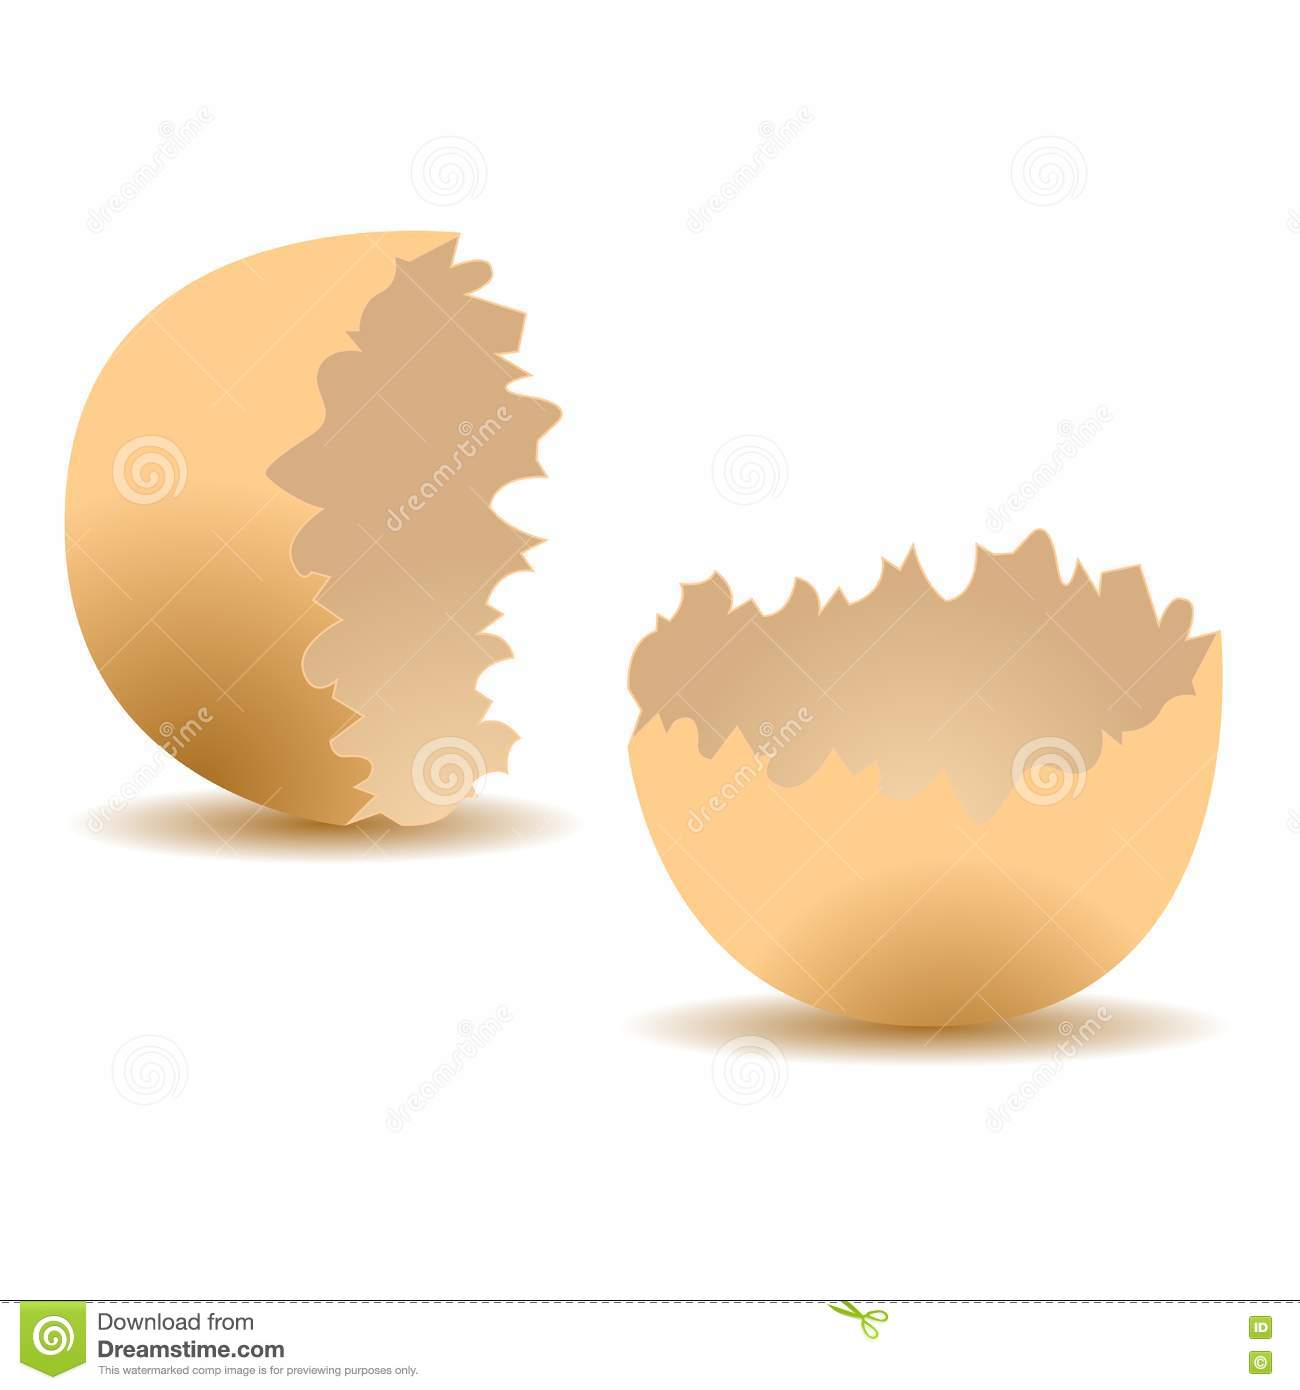 Cracked egg shell stock vector. Image of food, cracked ...